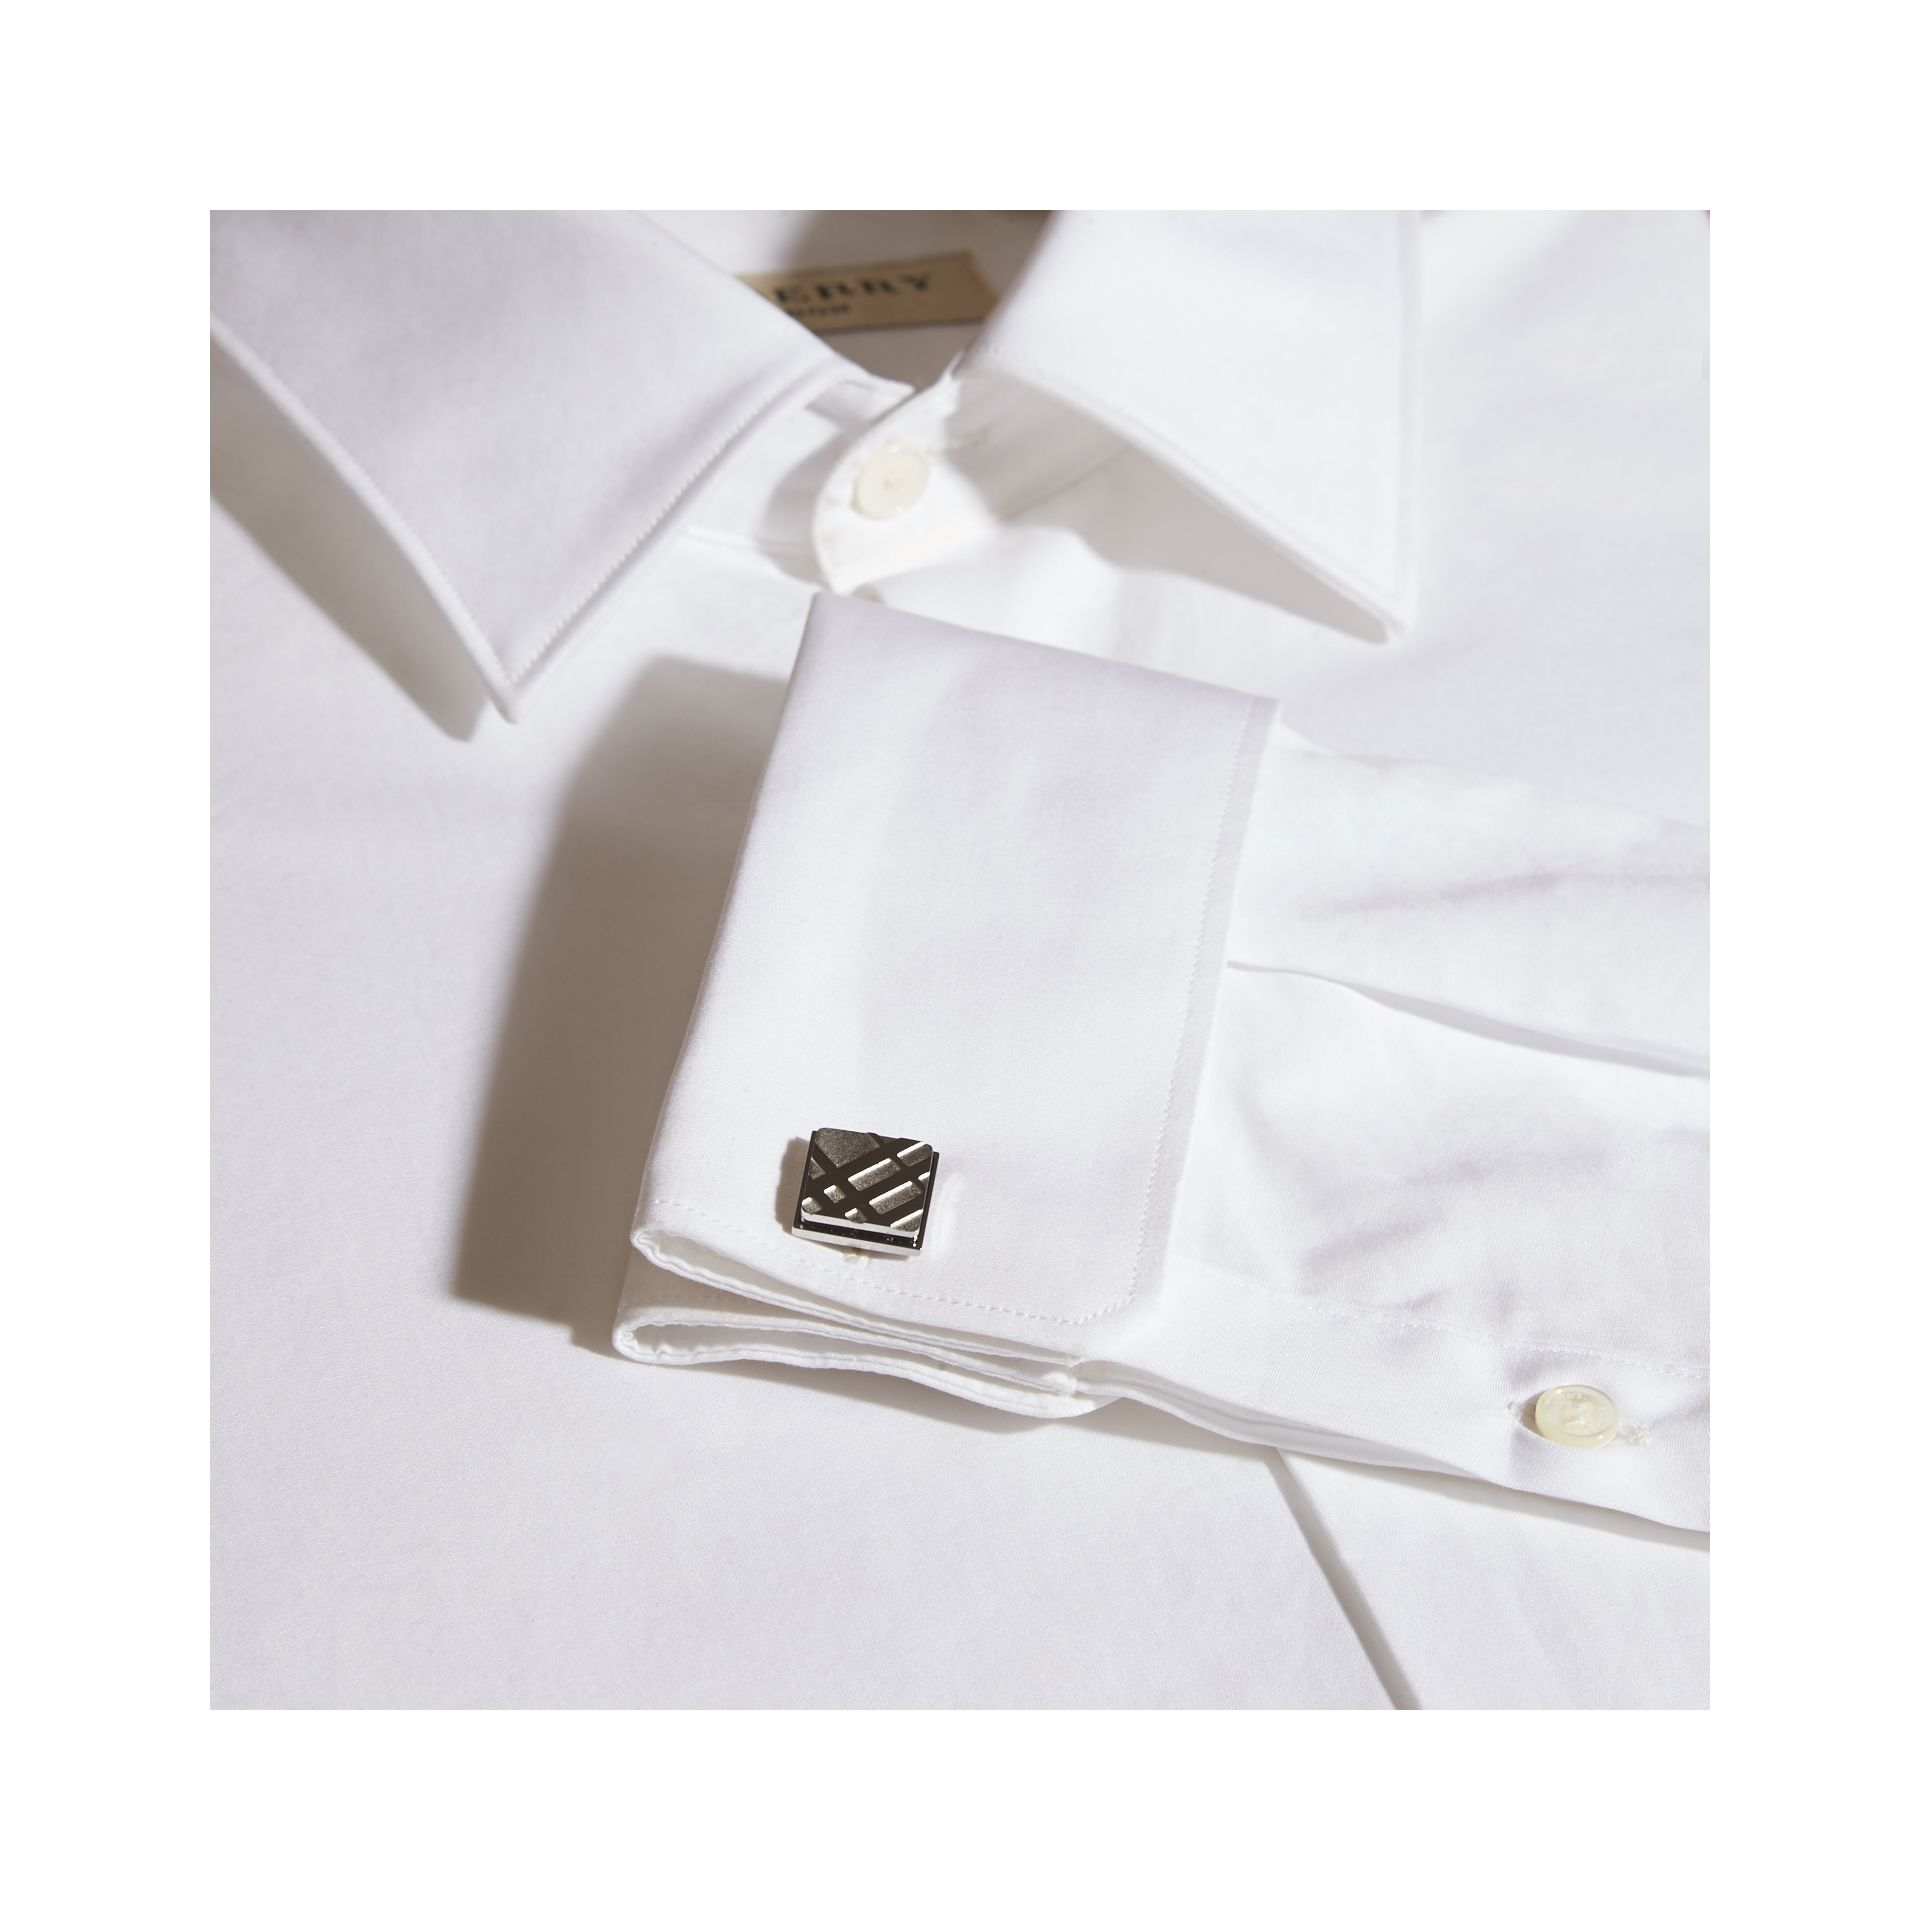 Check-engraved Square Cufflinks in Silver - Men | Burberry Singapore - gallery image 2